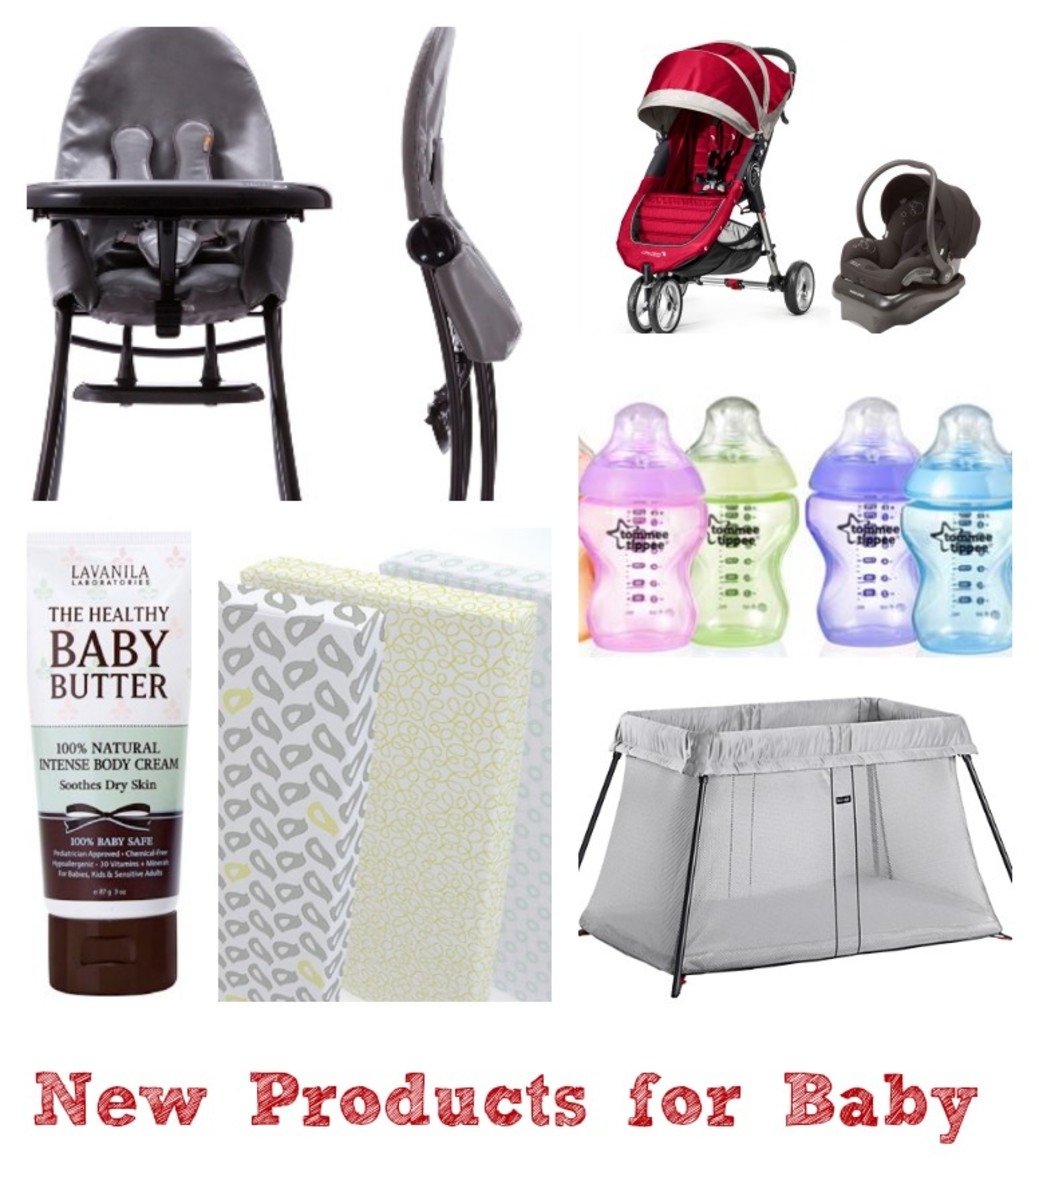 Friday Finds New Looks From Eijffinger: Friday Finds: New Products For Baby